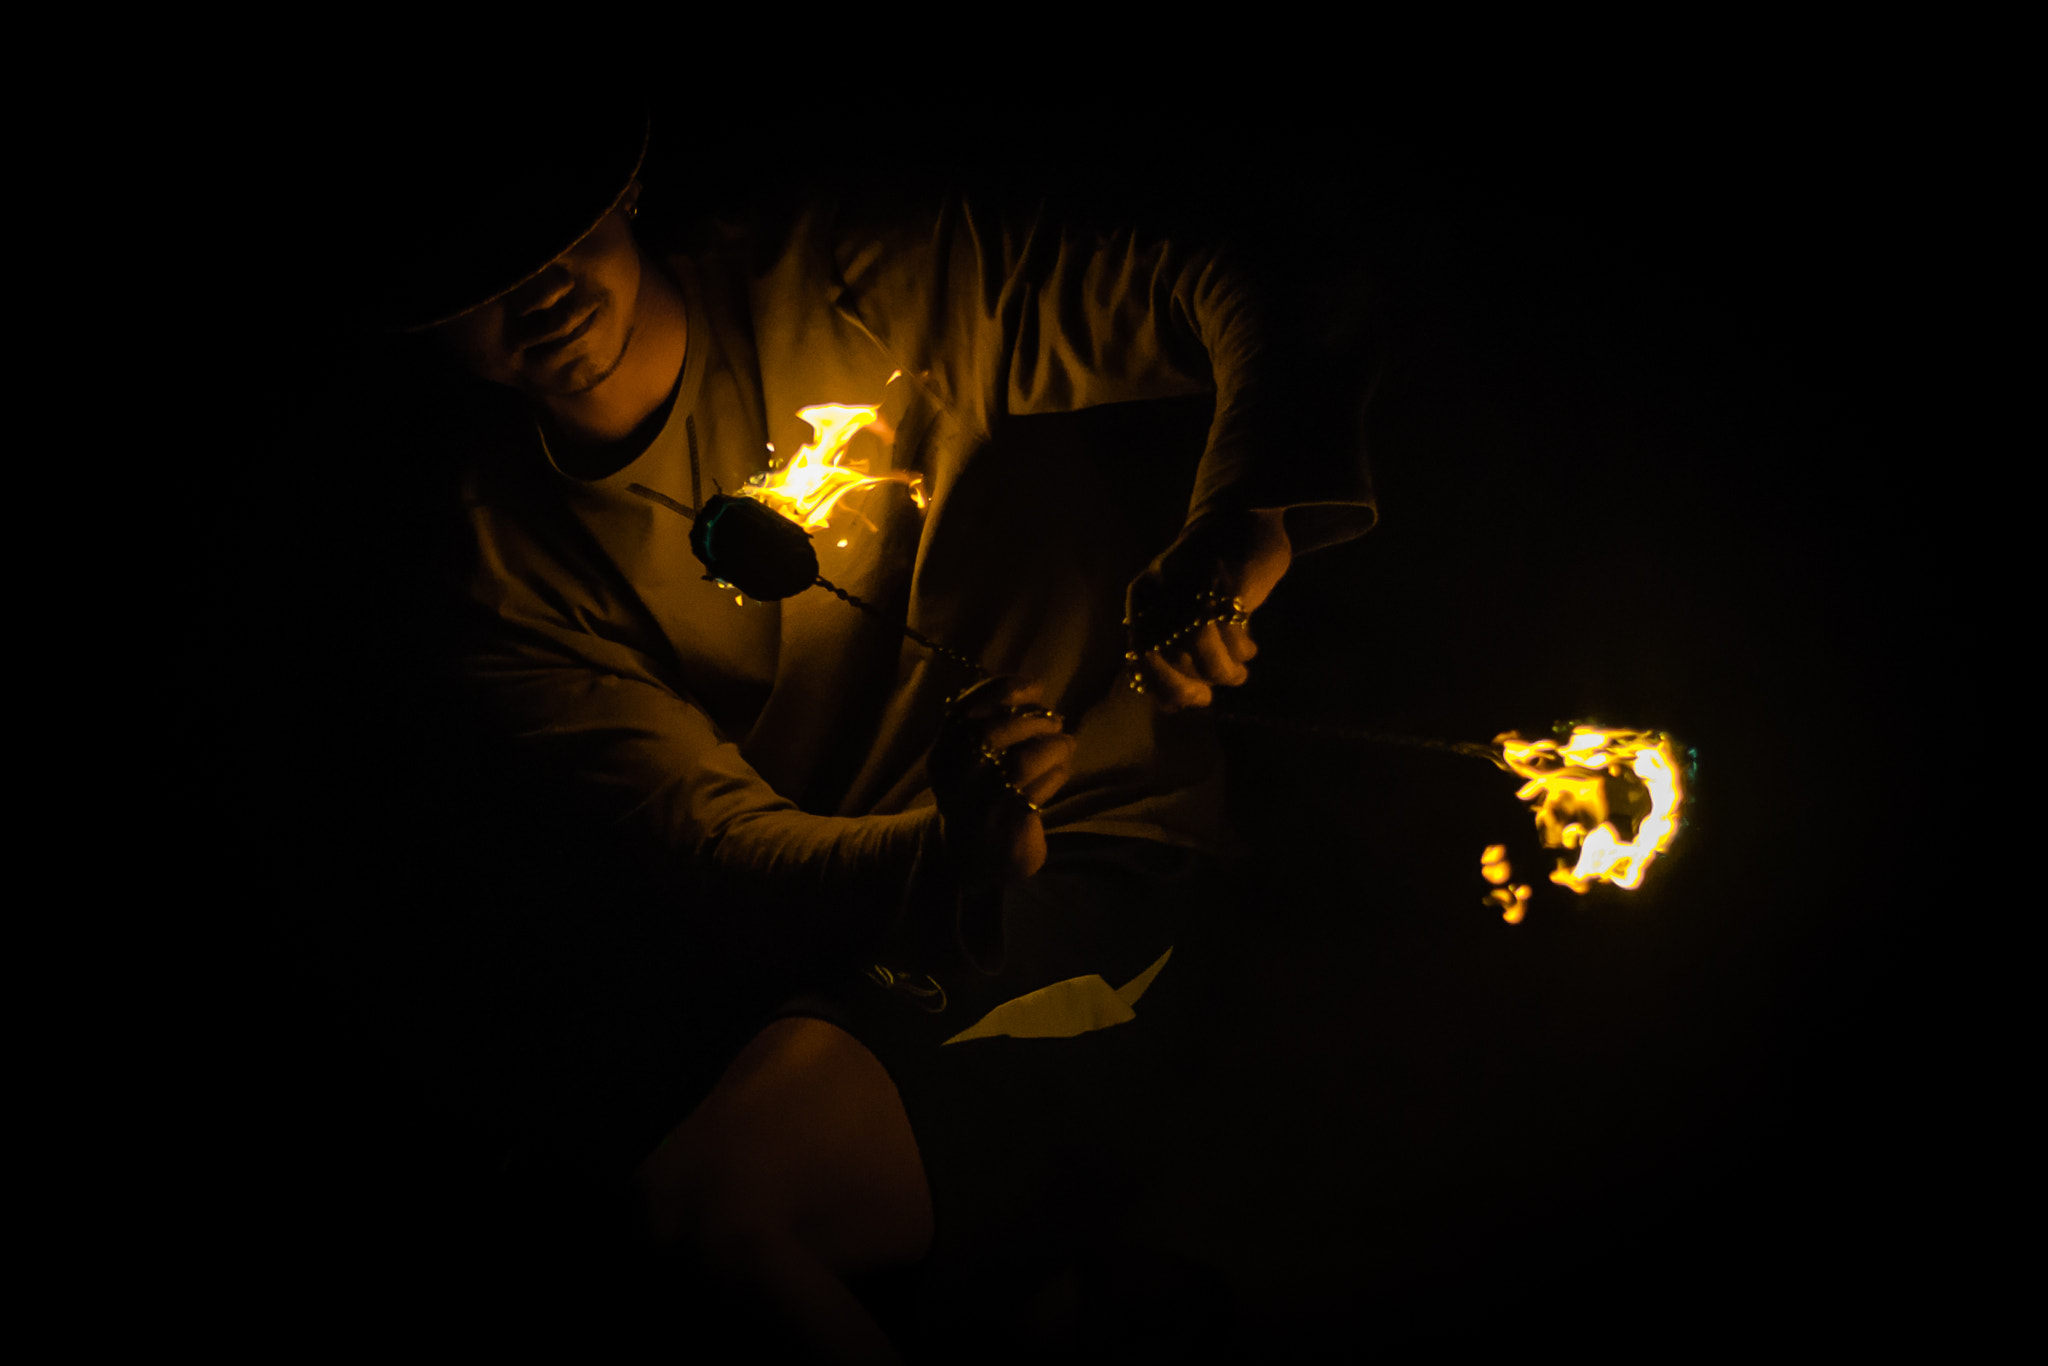 Photograph Playing with fire by Matthieu Dumeau on 500px